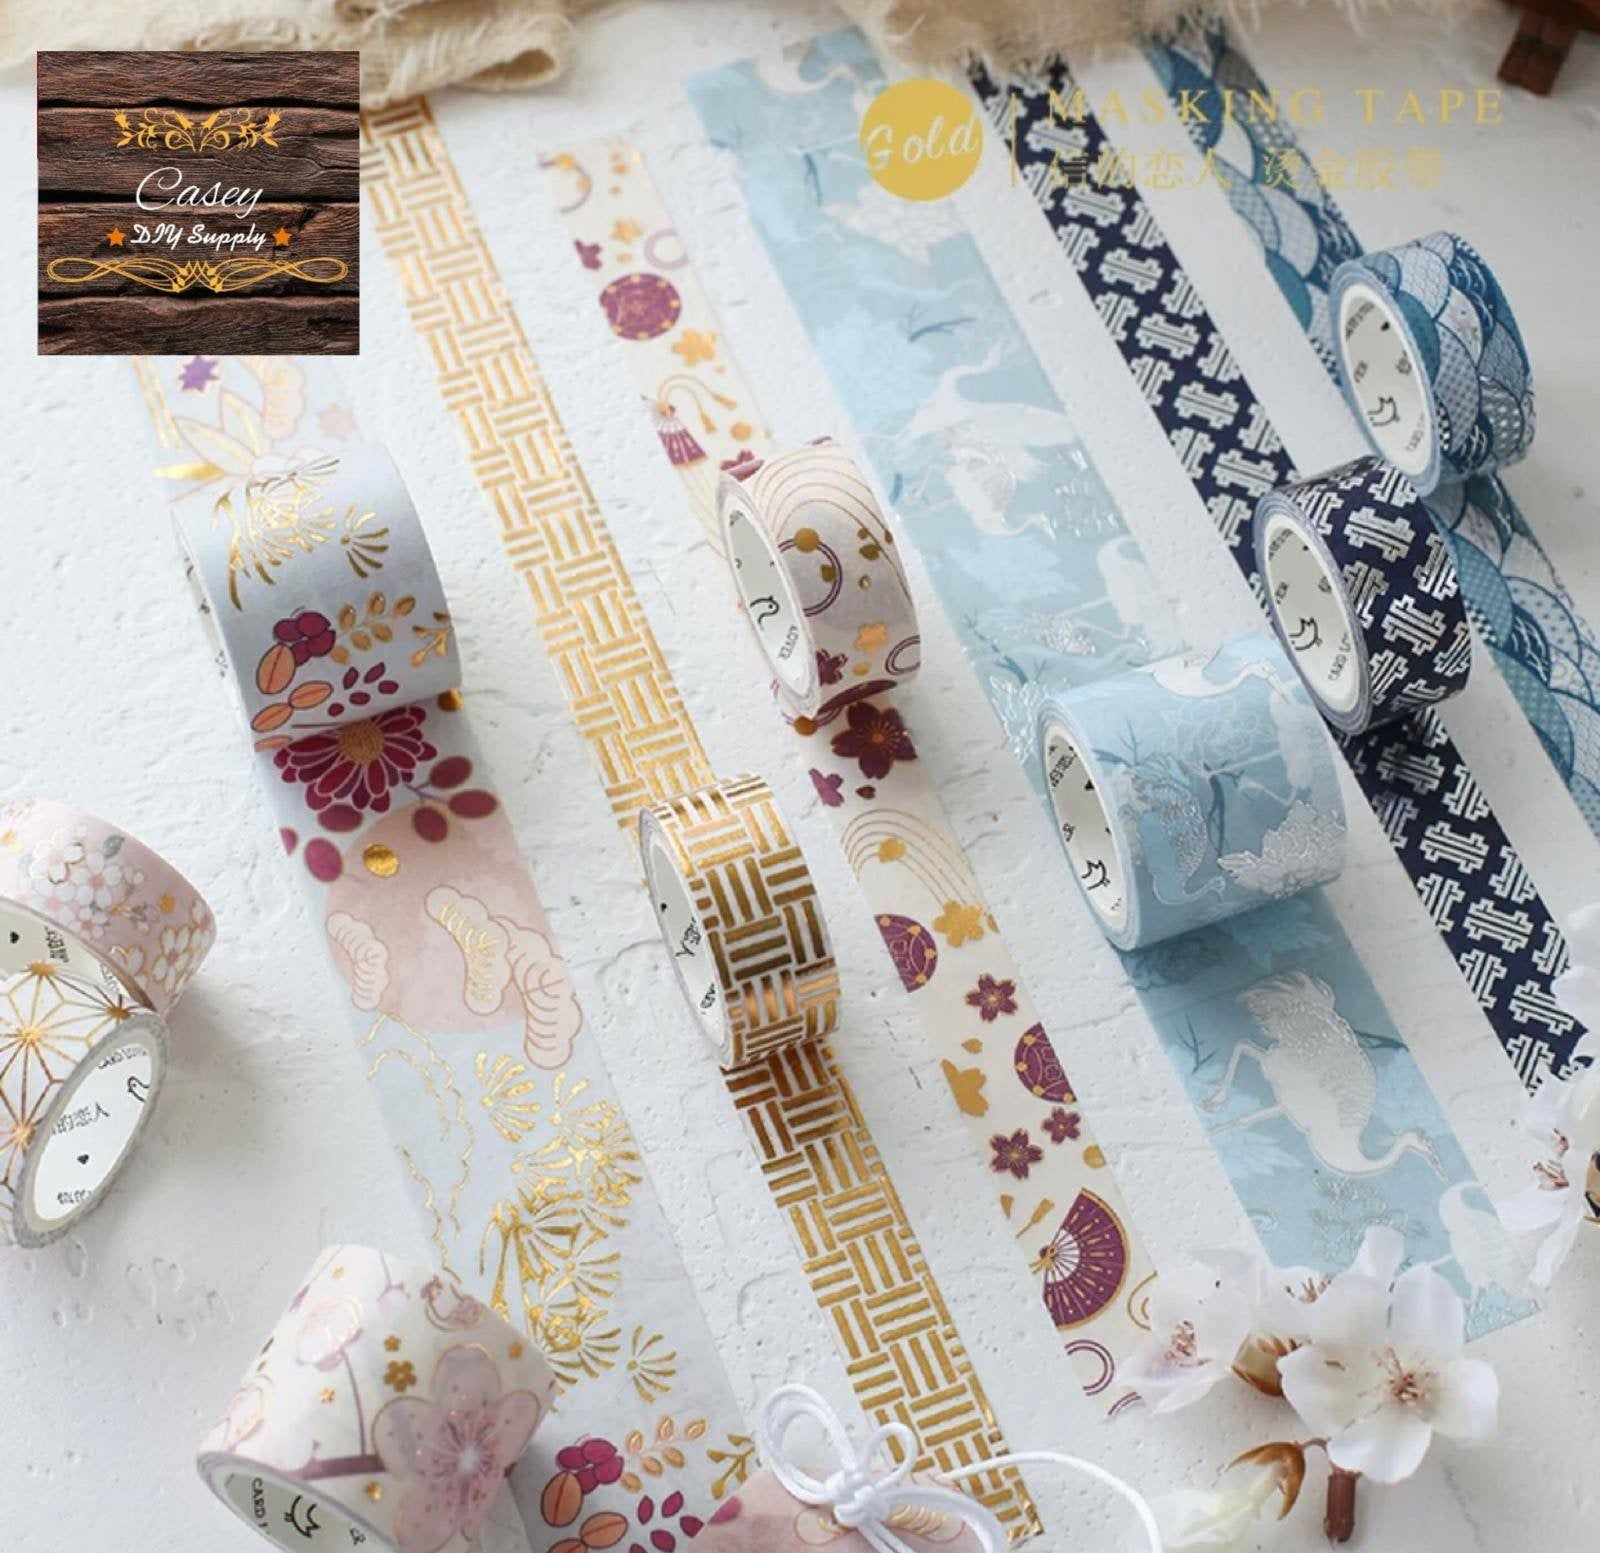 Set of 3 gold foil Japanese sakura flower washi tape in box, flower washi tape, masking tape, wrap tape for dairy & scrapbooking Description -2 Rolls(15mmx3M) -1 roll (30mmx3M) Total: 3 Rolls Remarks: 1. I handle your order in 1 day when I receive your payment and the shipment will be arranged within 3 to 12 days. 2. All of the orders offer e-express service and registered sign, which cover most of the countries with online tracking. 3. For personalised order, pls convo me to my mail box, I